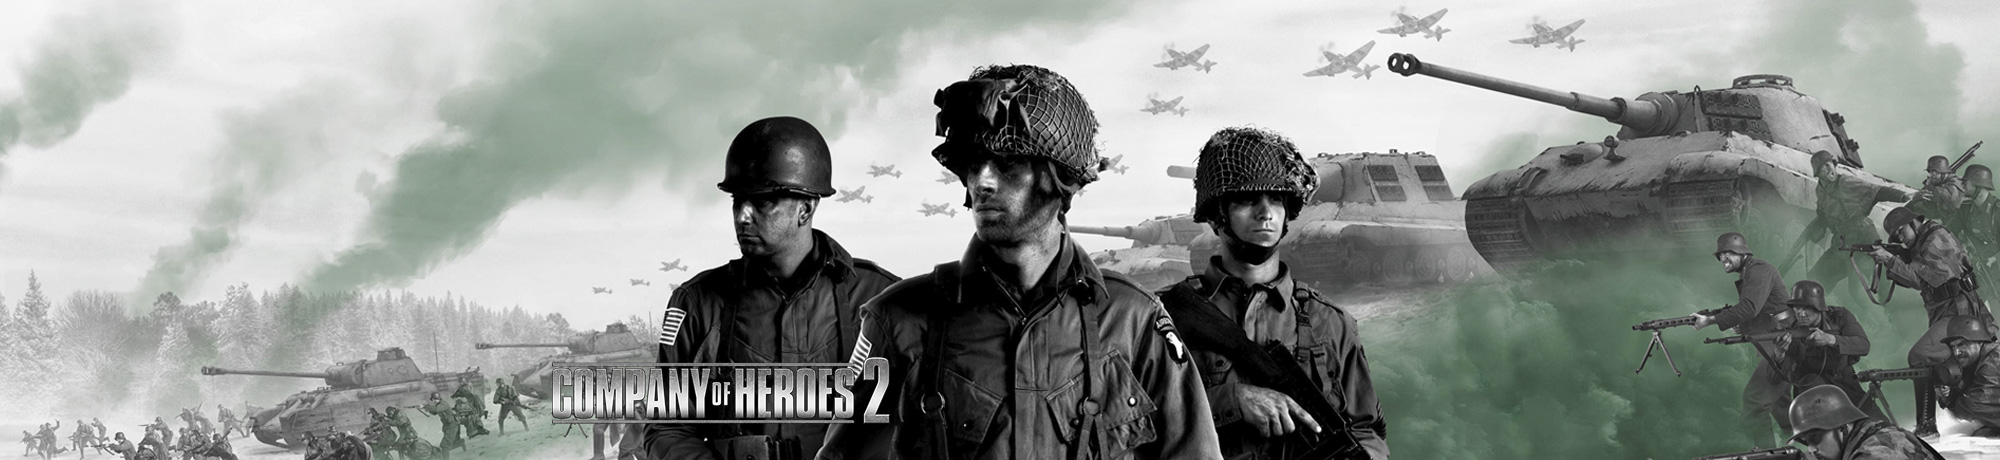 Company of Heroes 2 :: Photo Gallery